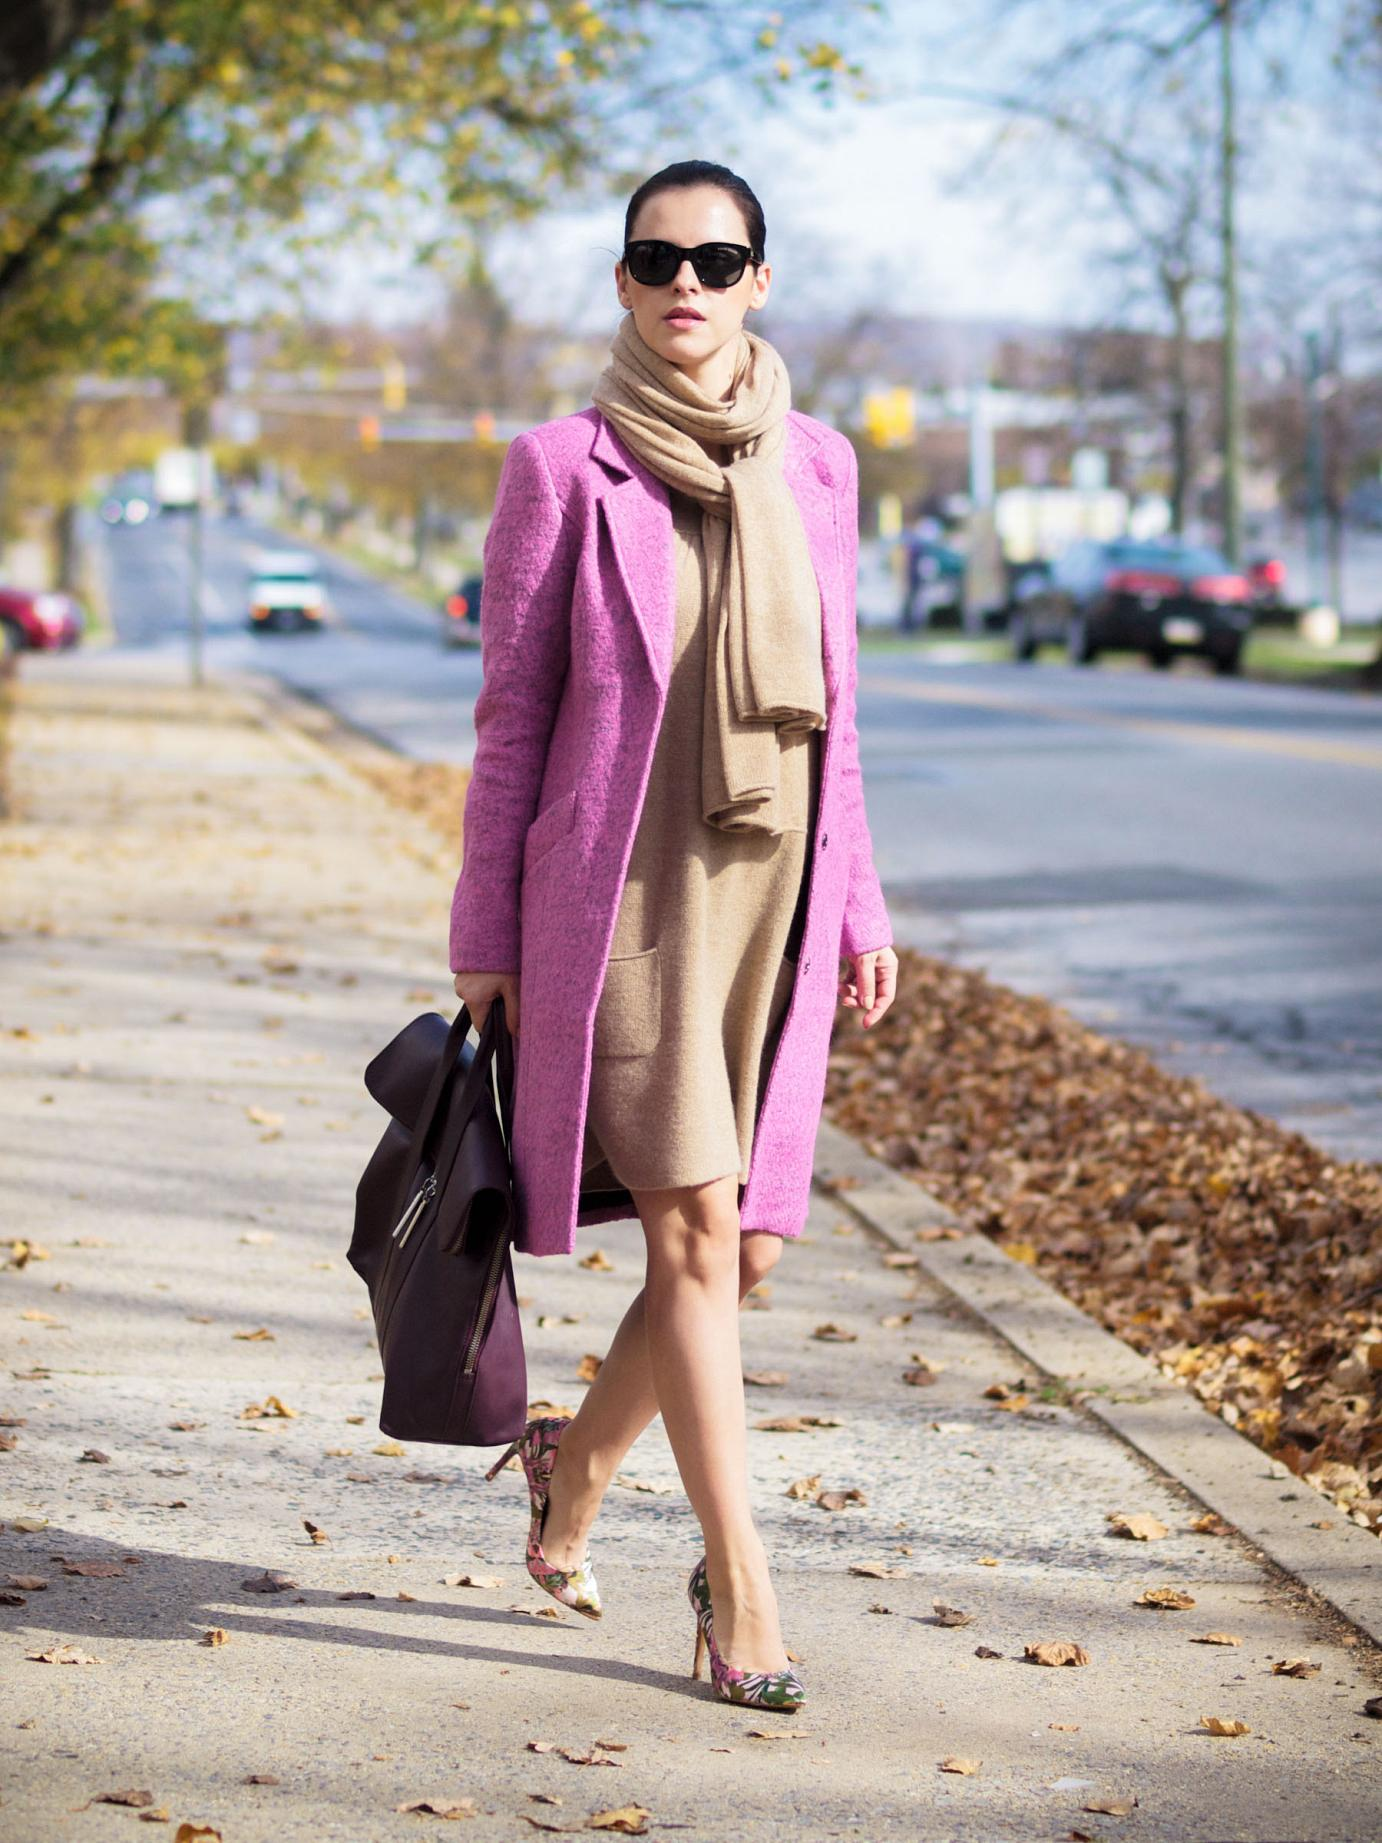 bittersweet colours, maternity style, bumb style, 21 weeks, fall street style, street style, fall trends, pink coat, gestuz coat, 3.1 phillip lim bag, ted baker, floral print pumps, cashmere dress, camel dress, sweater dress, camel scarf, cashmere scarf, pink trend,